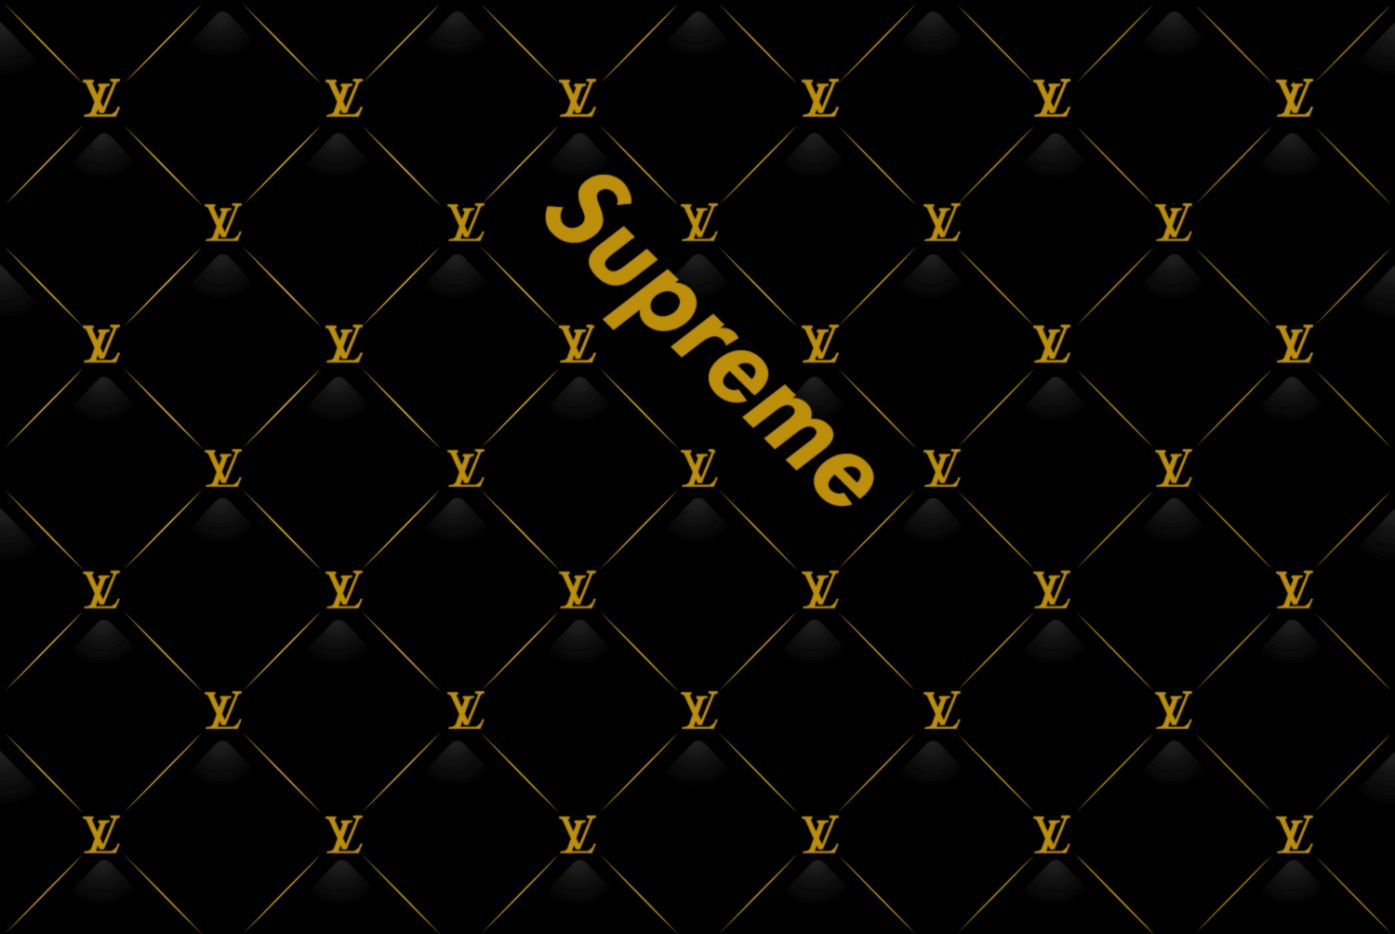 Louis Vuitton Wallpaper Iphone Wallpapers Corner